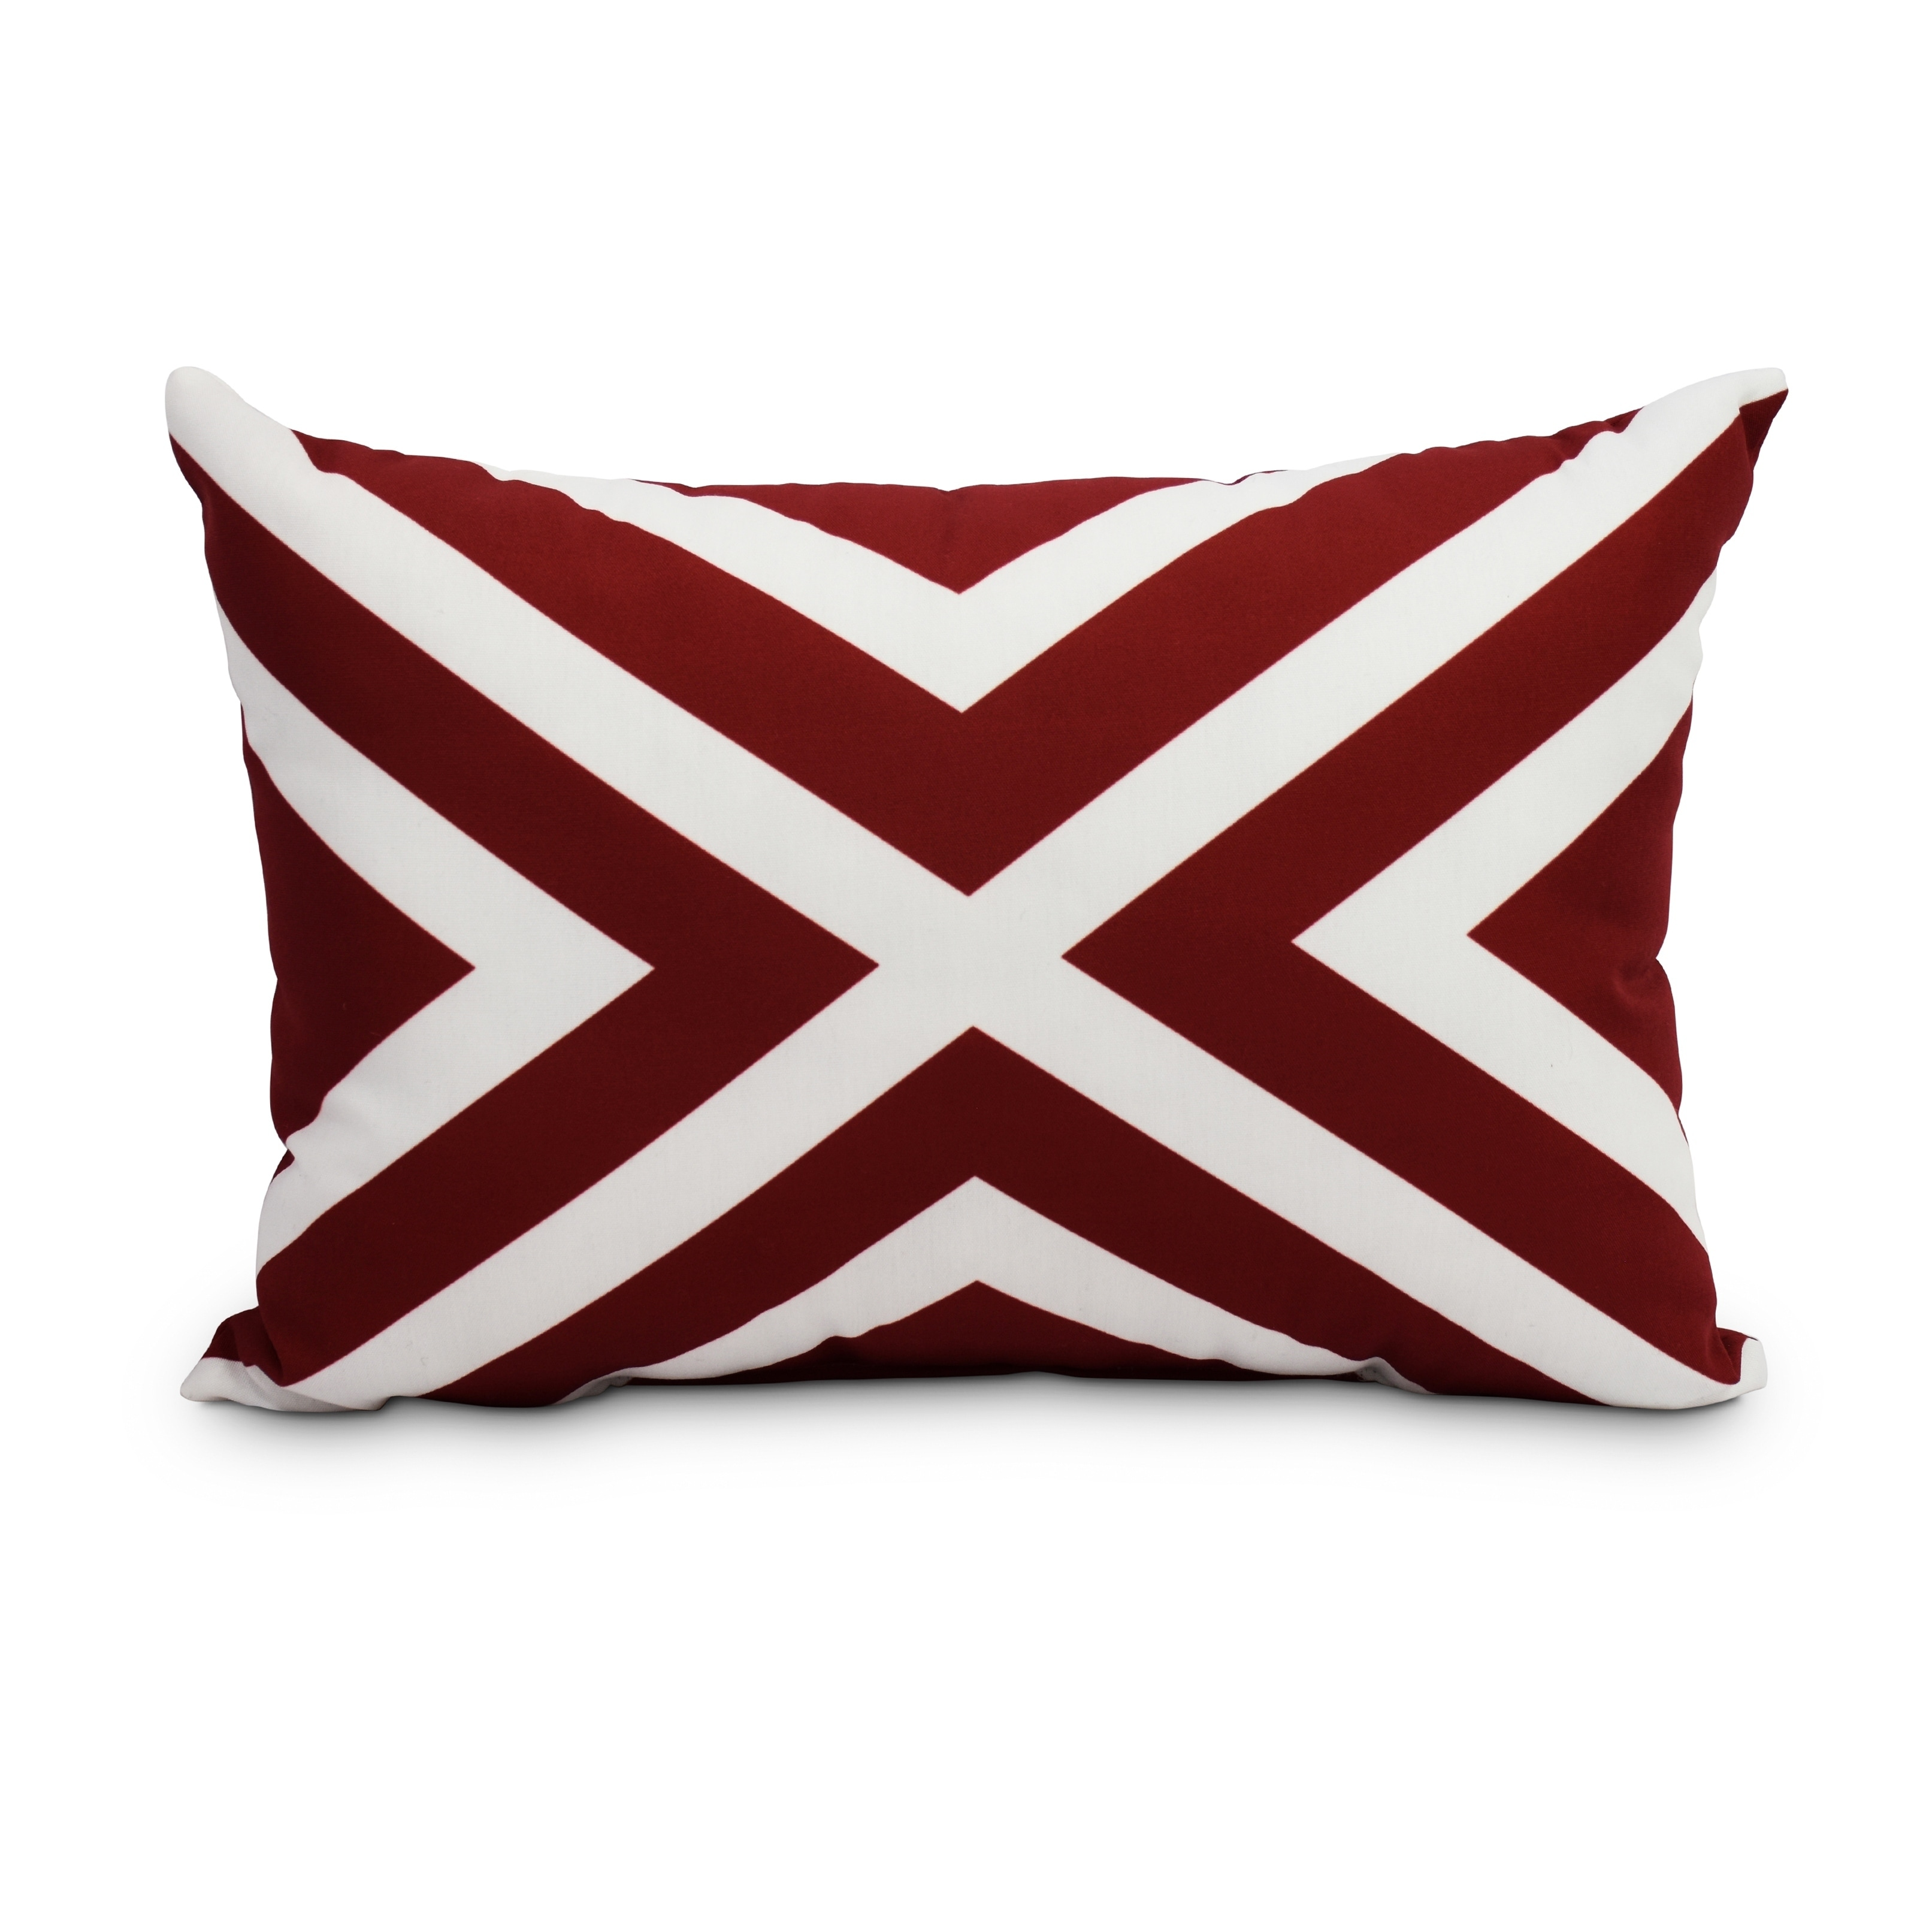 Shop 14 X 20 Inch Red Decorative Striped Outdoor Throw Pillow Free